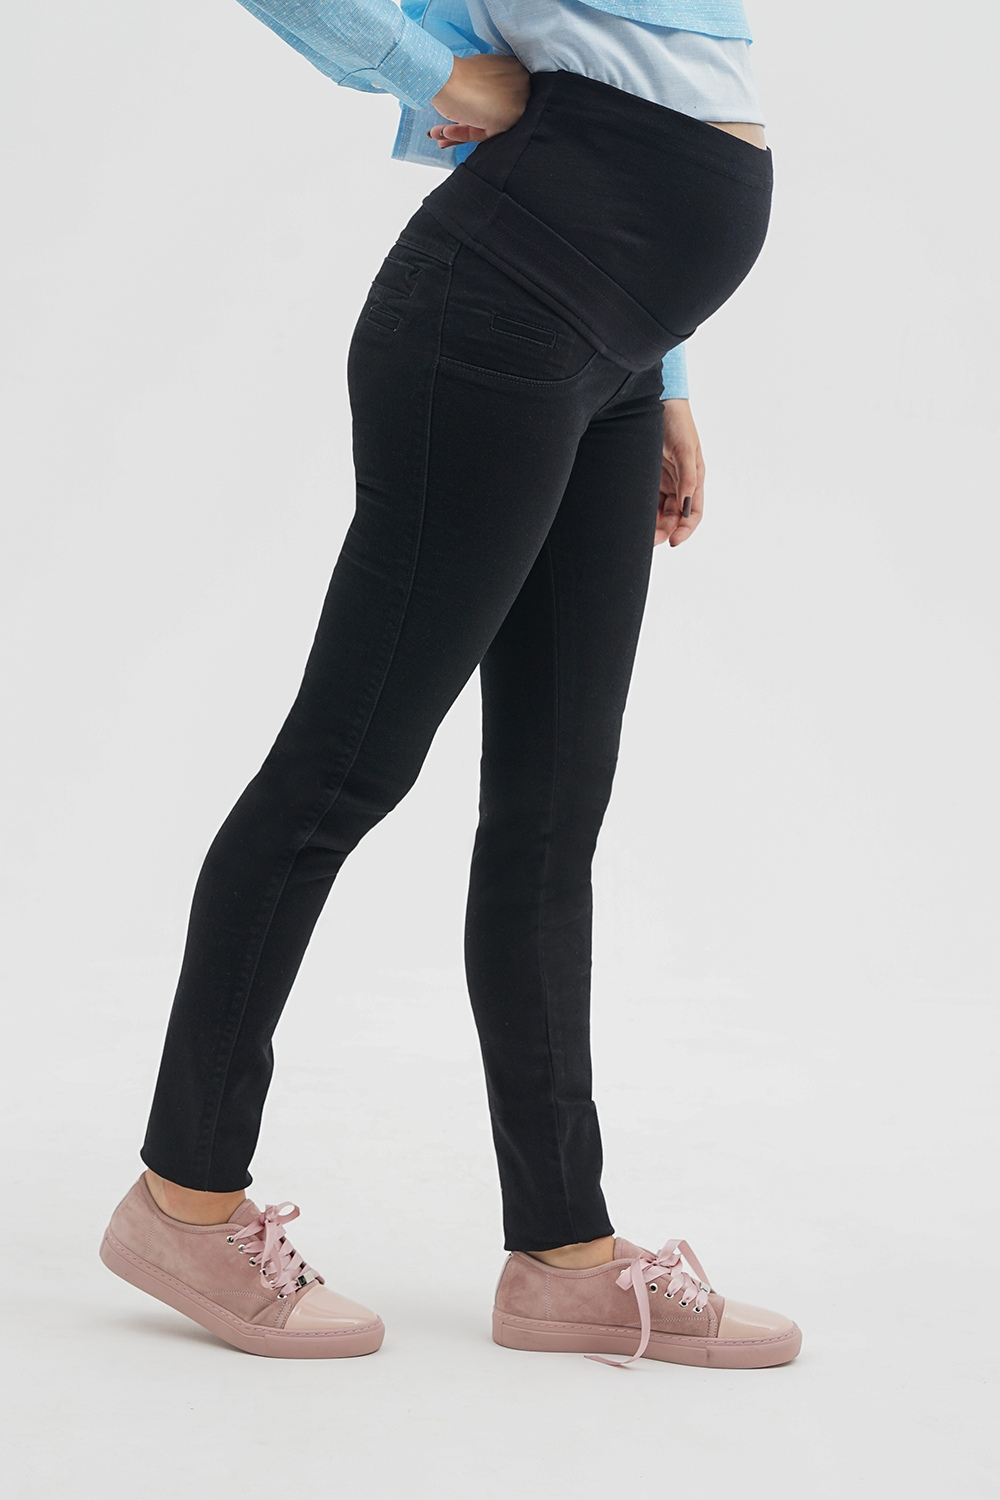 To Be/scoro/tobe_jeans_792746_4_black11.jpg